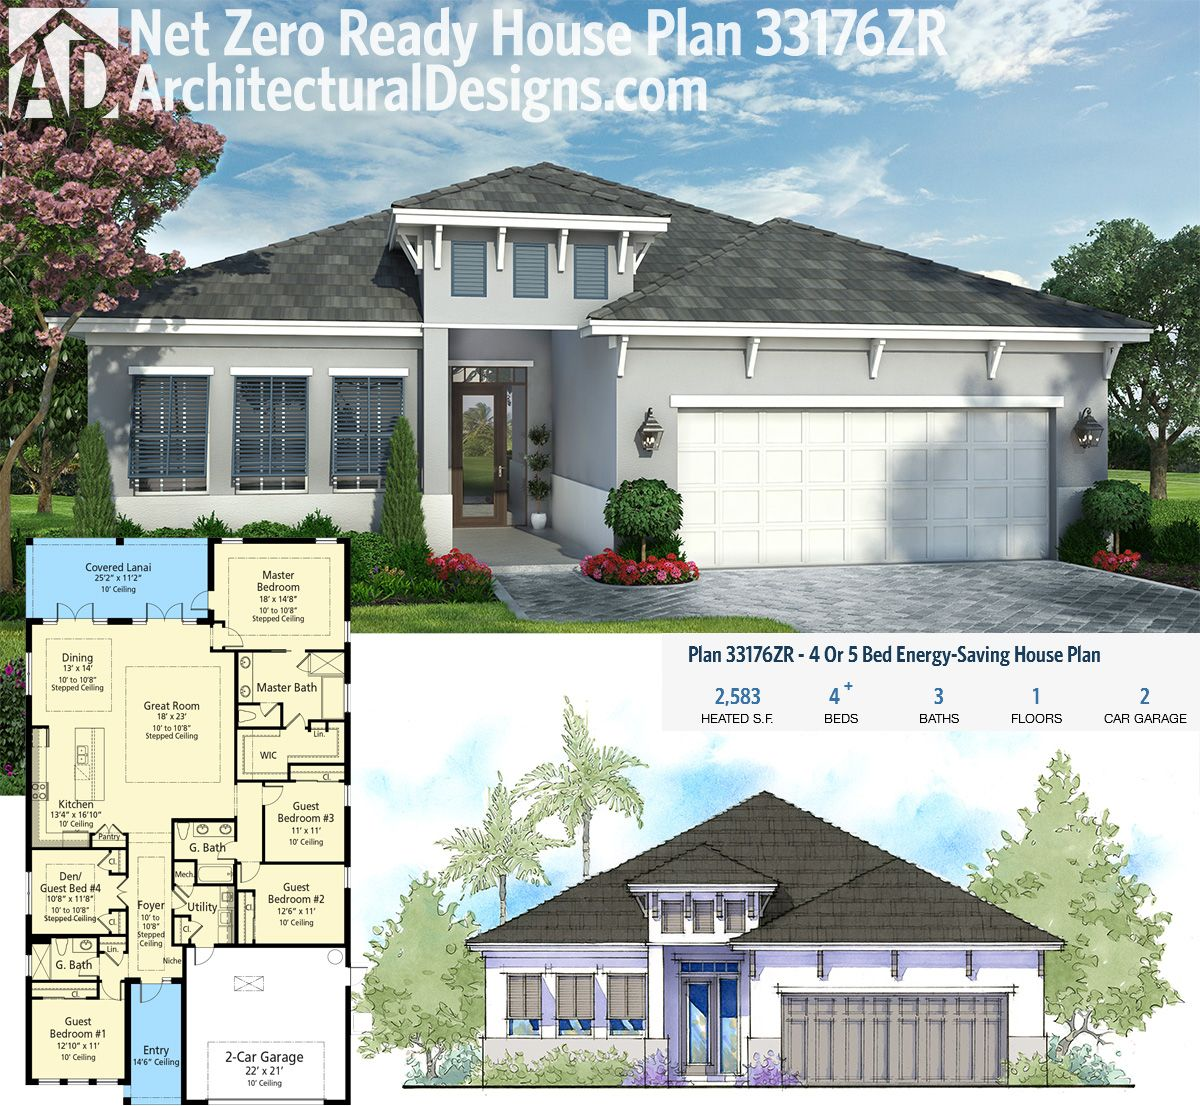 Plan 33176zr 4 Or 5 Bed Energy Saving House Plan House Plans Energy Saving House How To Plan